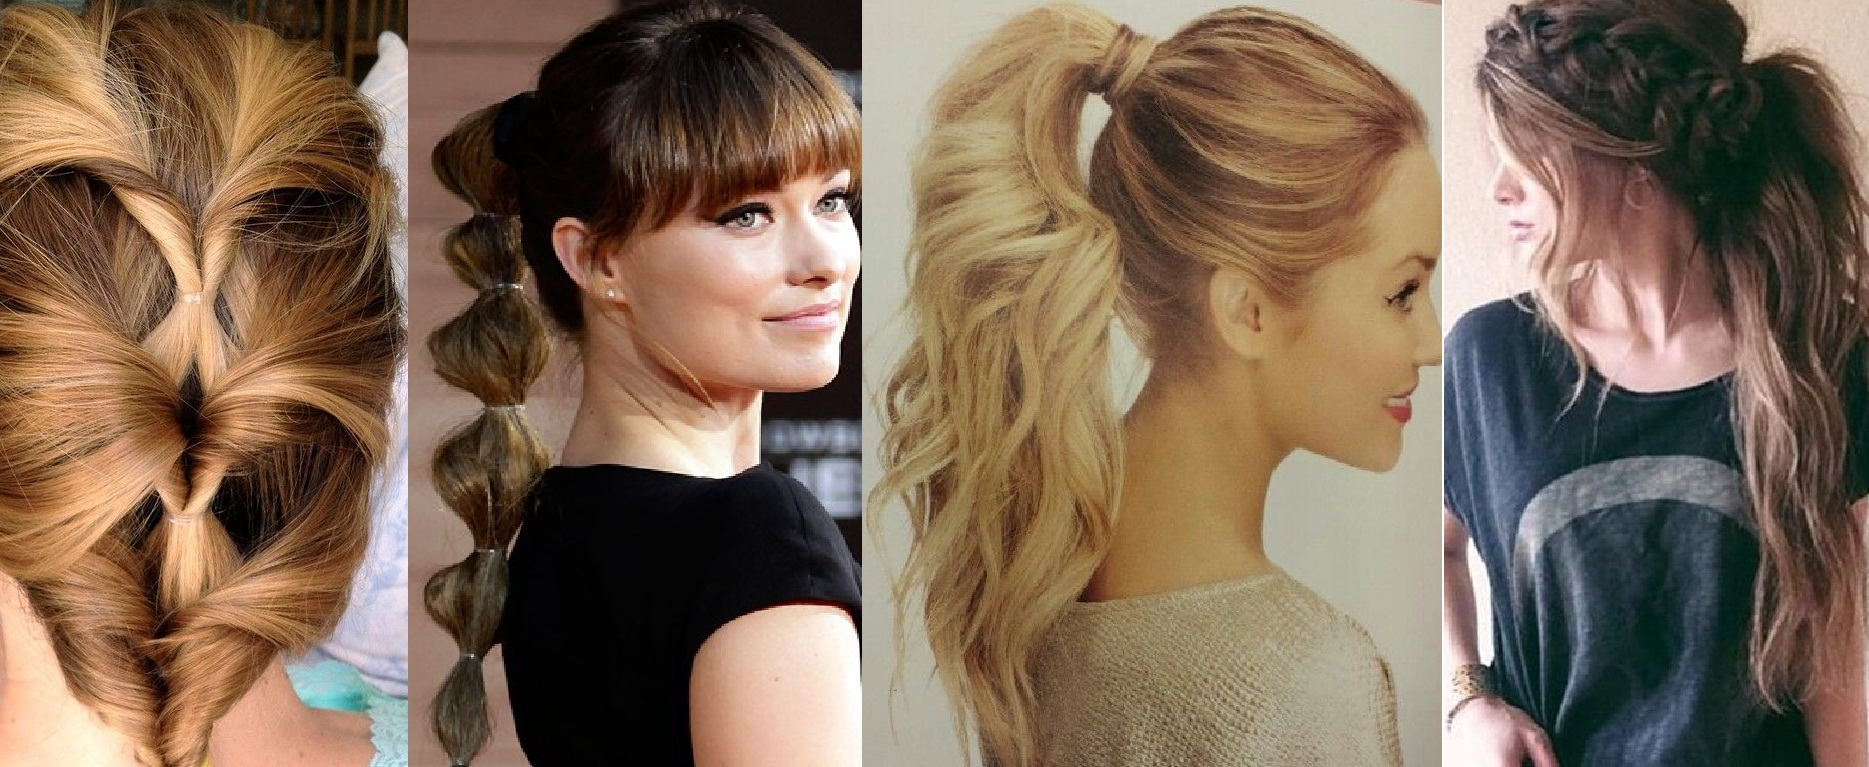 Best Styles For Long Hair: Best Ponytail Hairstyles For Long, Medium & Short Hairs